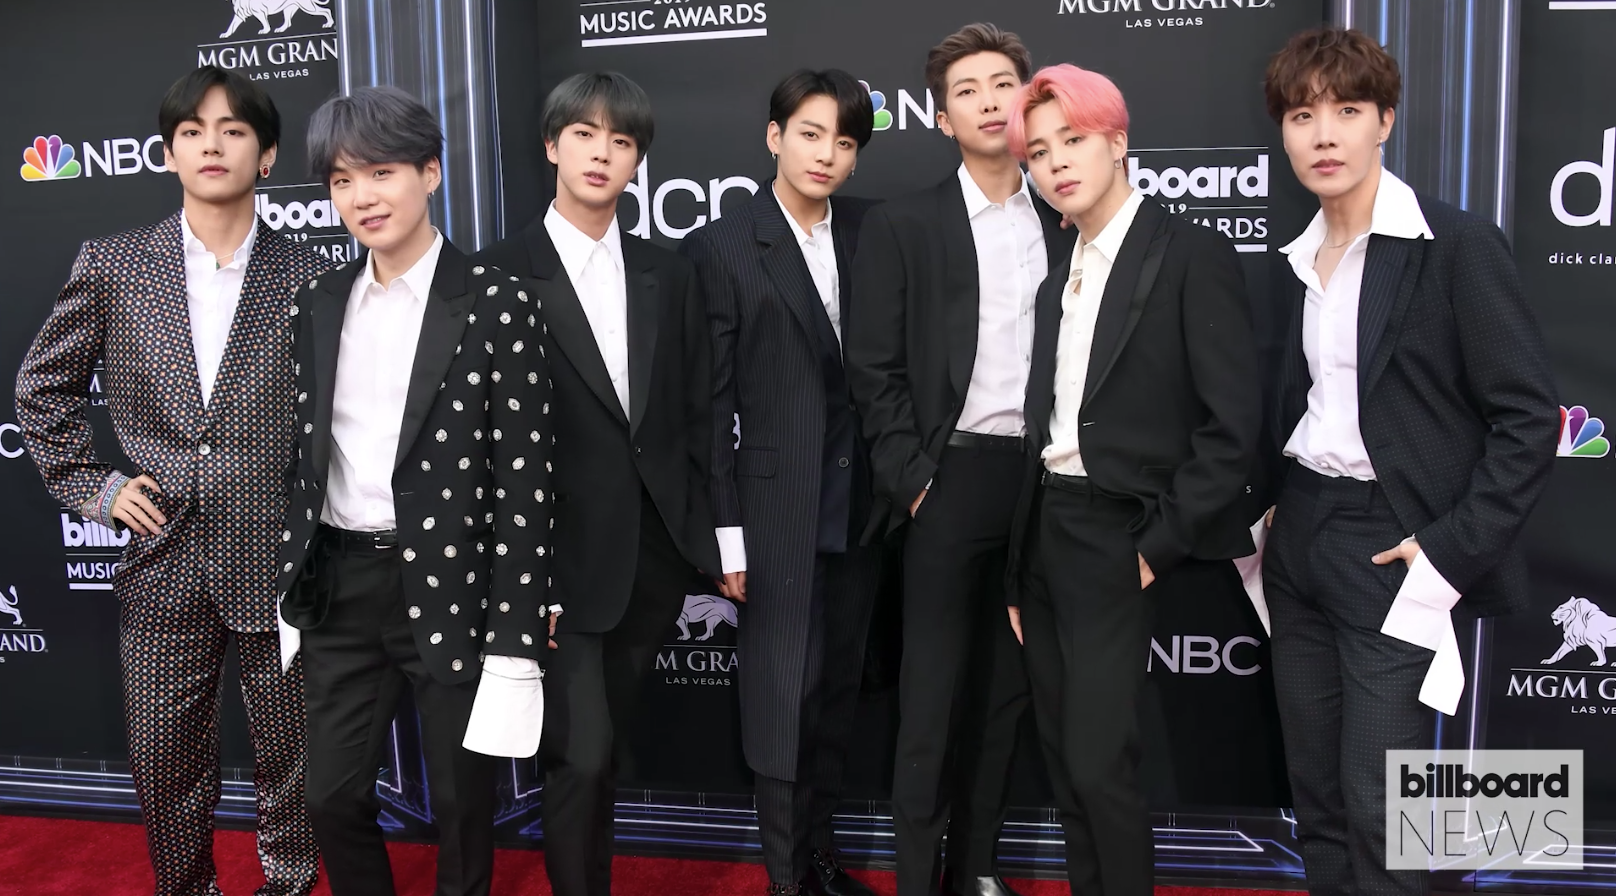 BB News BTS to Give Debut TV Performance of Butter at 2021 Billboard Music Awards 1620764311 compressed